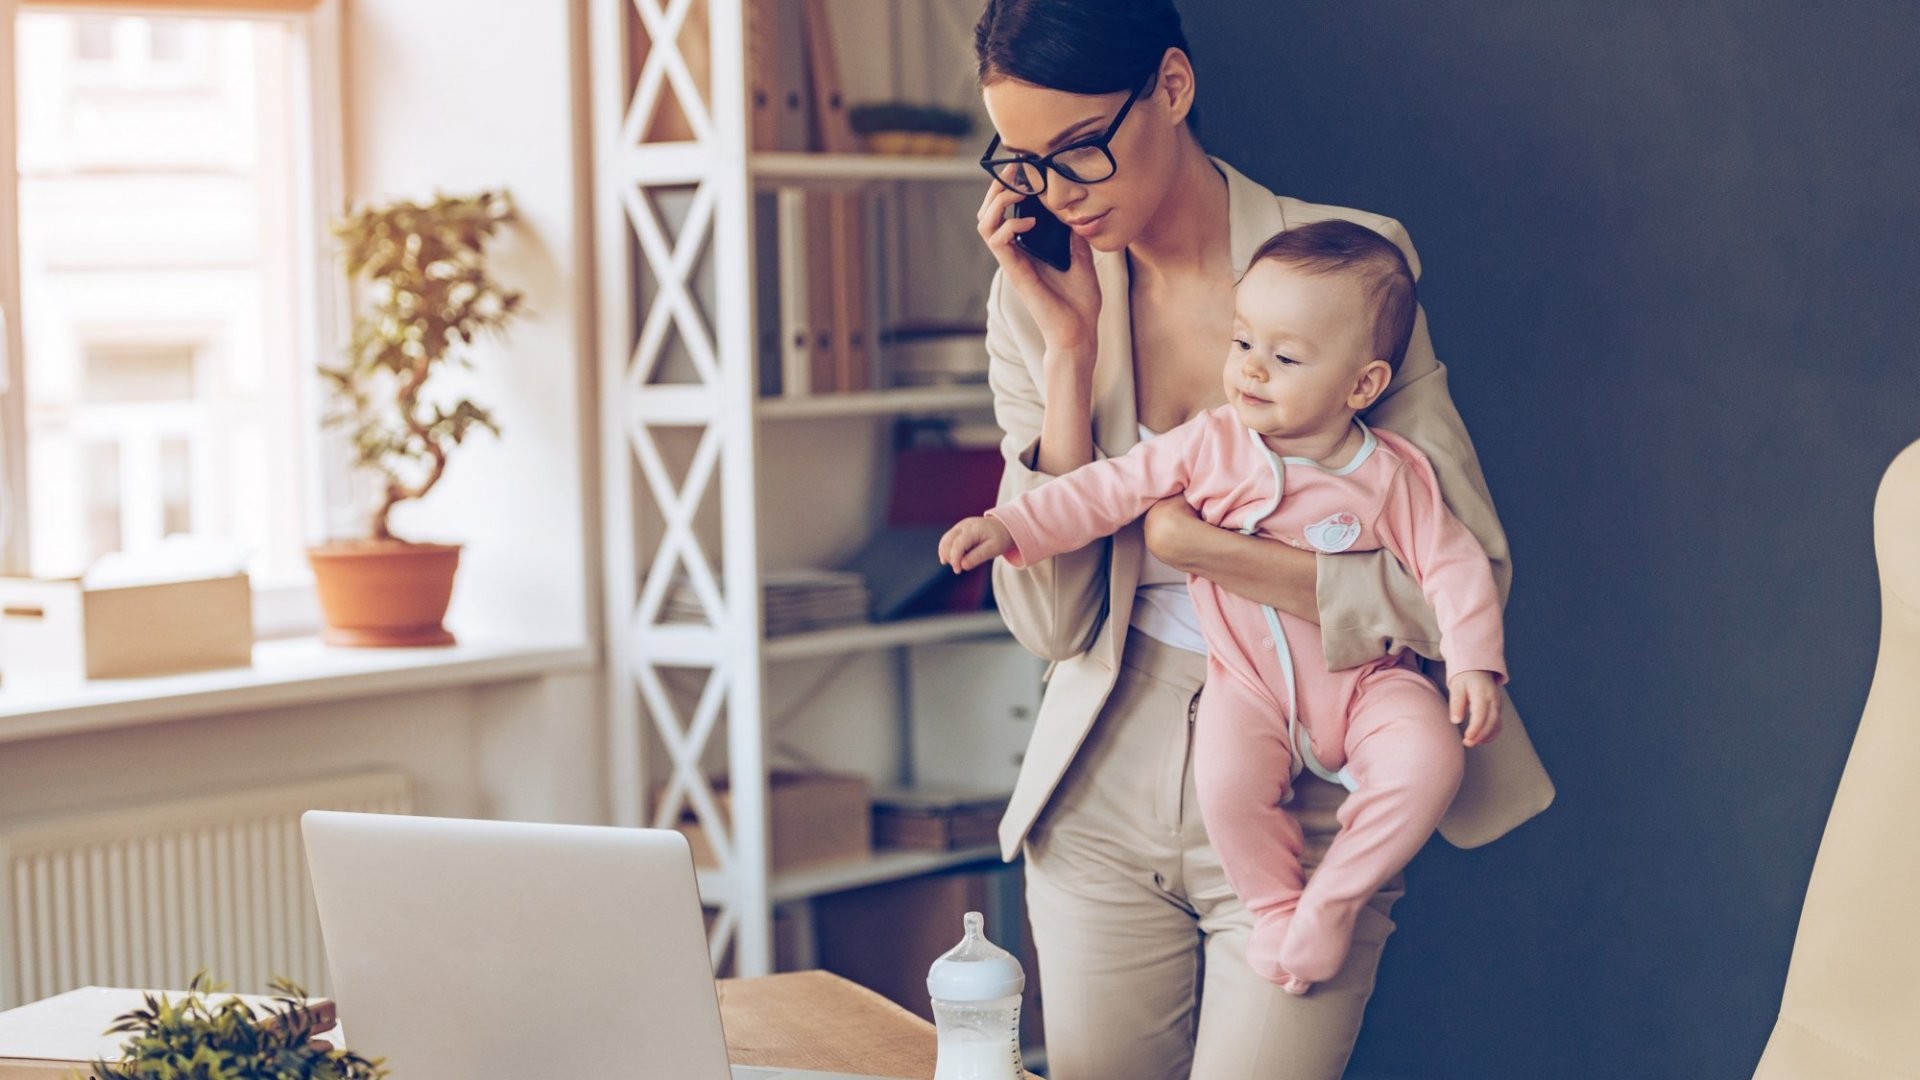 Here's What To Get The Working Mom In Your Life